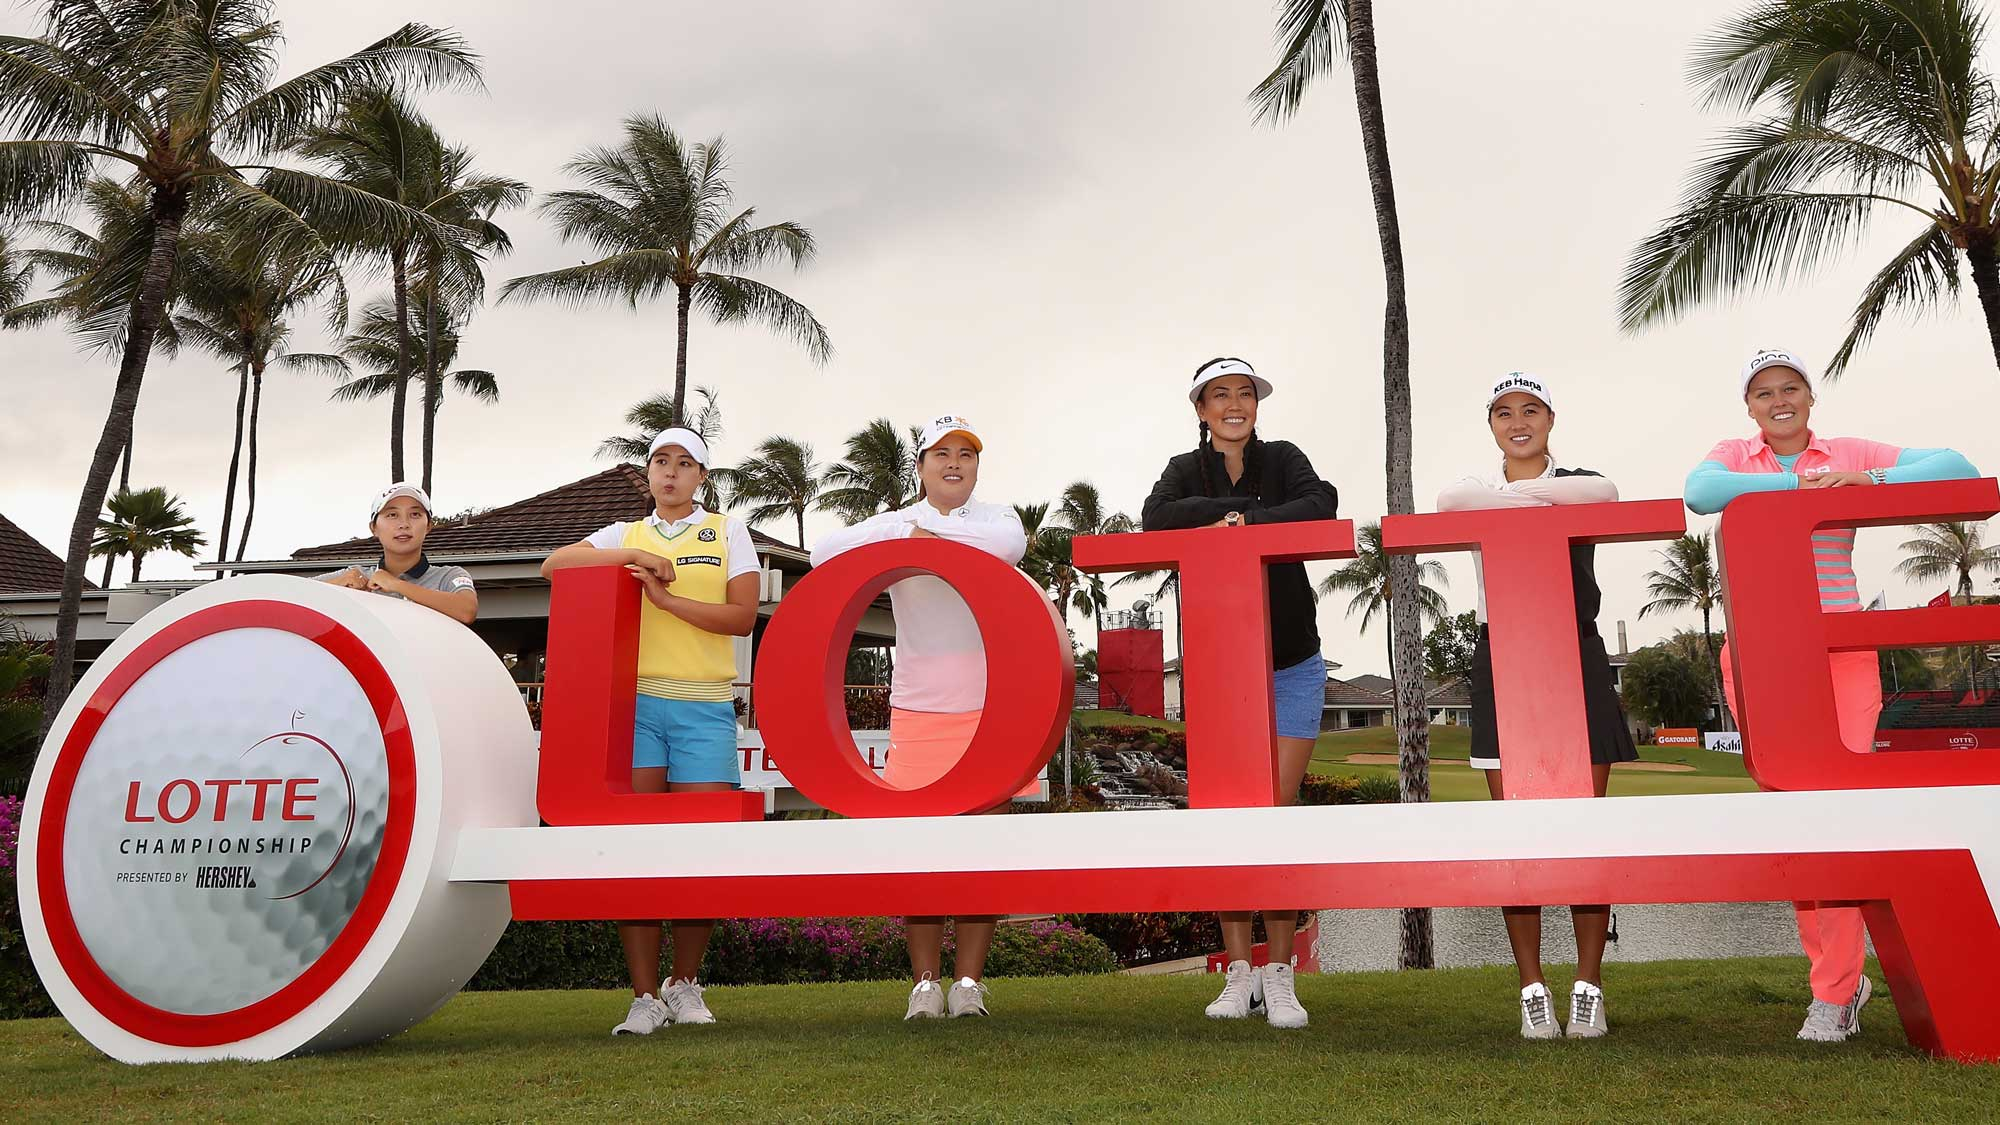 (L-R) Hyo Joo Kim, In Gee Chun, Inbee Park, Michelle Wie, Minjee Lee and Brooke M. Henderson pose together at a photo call ahead of the LPGA LOTTE Championship Presented By Hershey at Ko Olina Golf Club